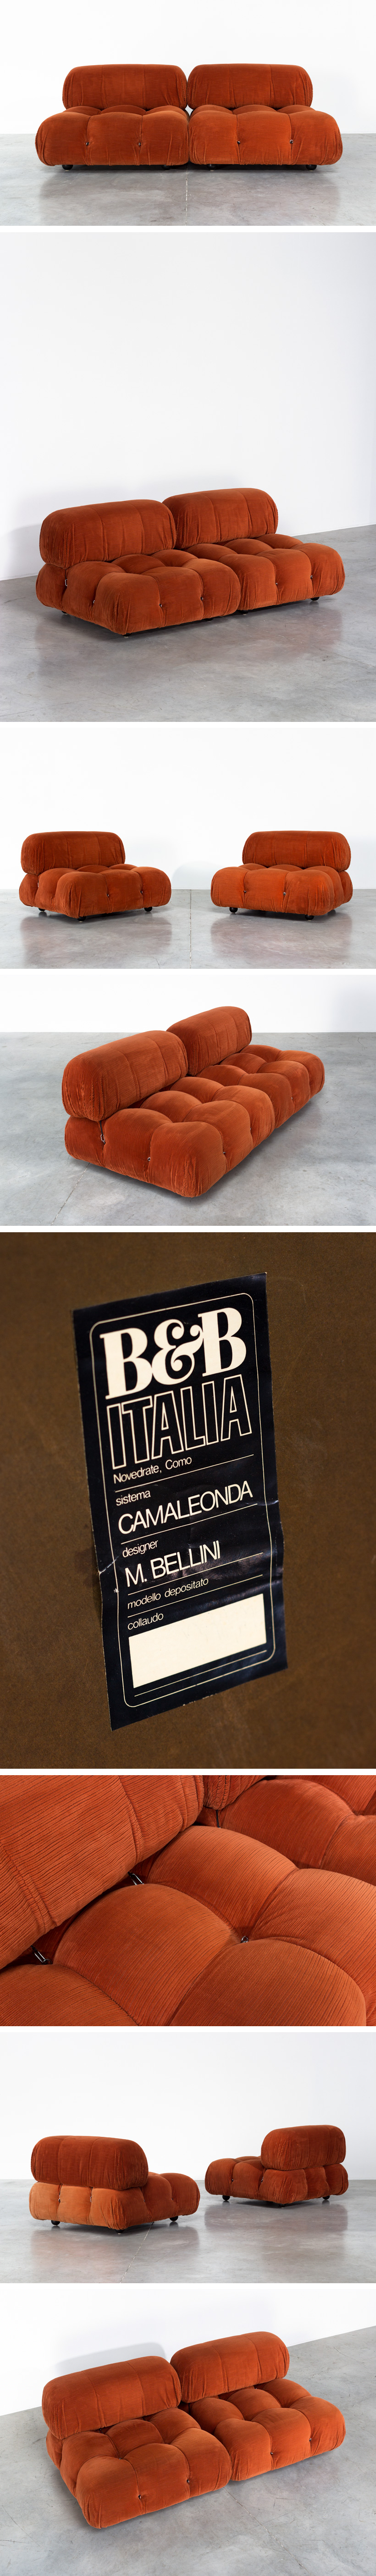 Mario Bellini Camaleonda lounge chairs B&B Italia Large